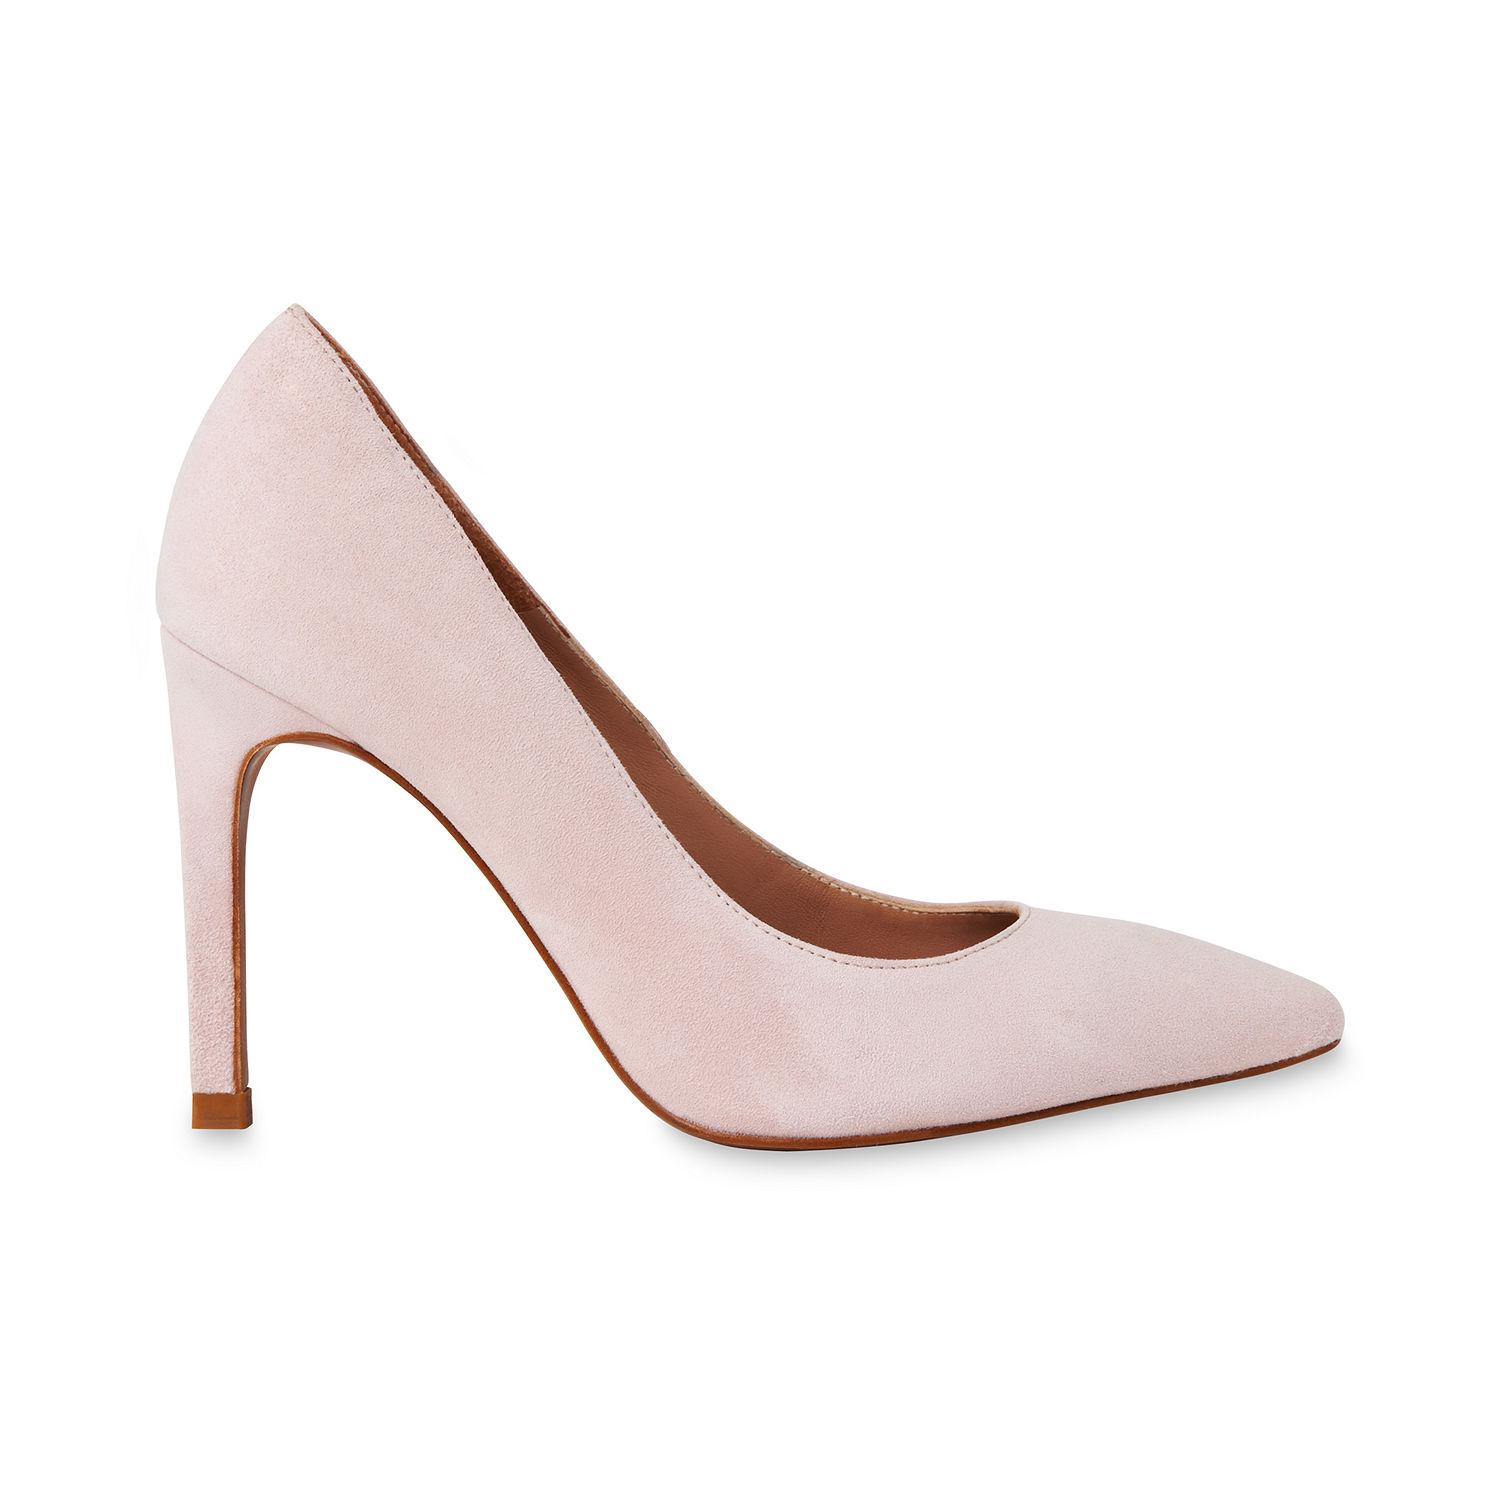 3a922e6464ba1 Lyst - Whistles Cornel Suede Point Pump in Pink